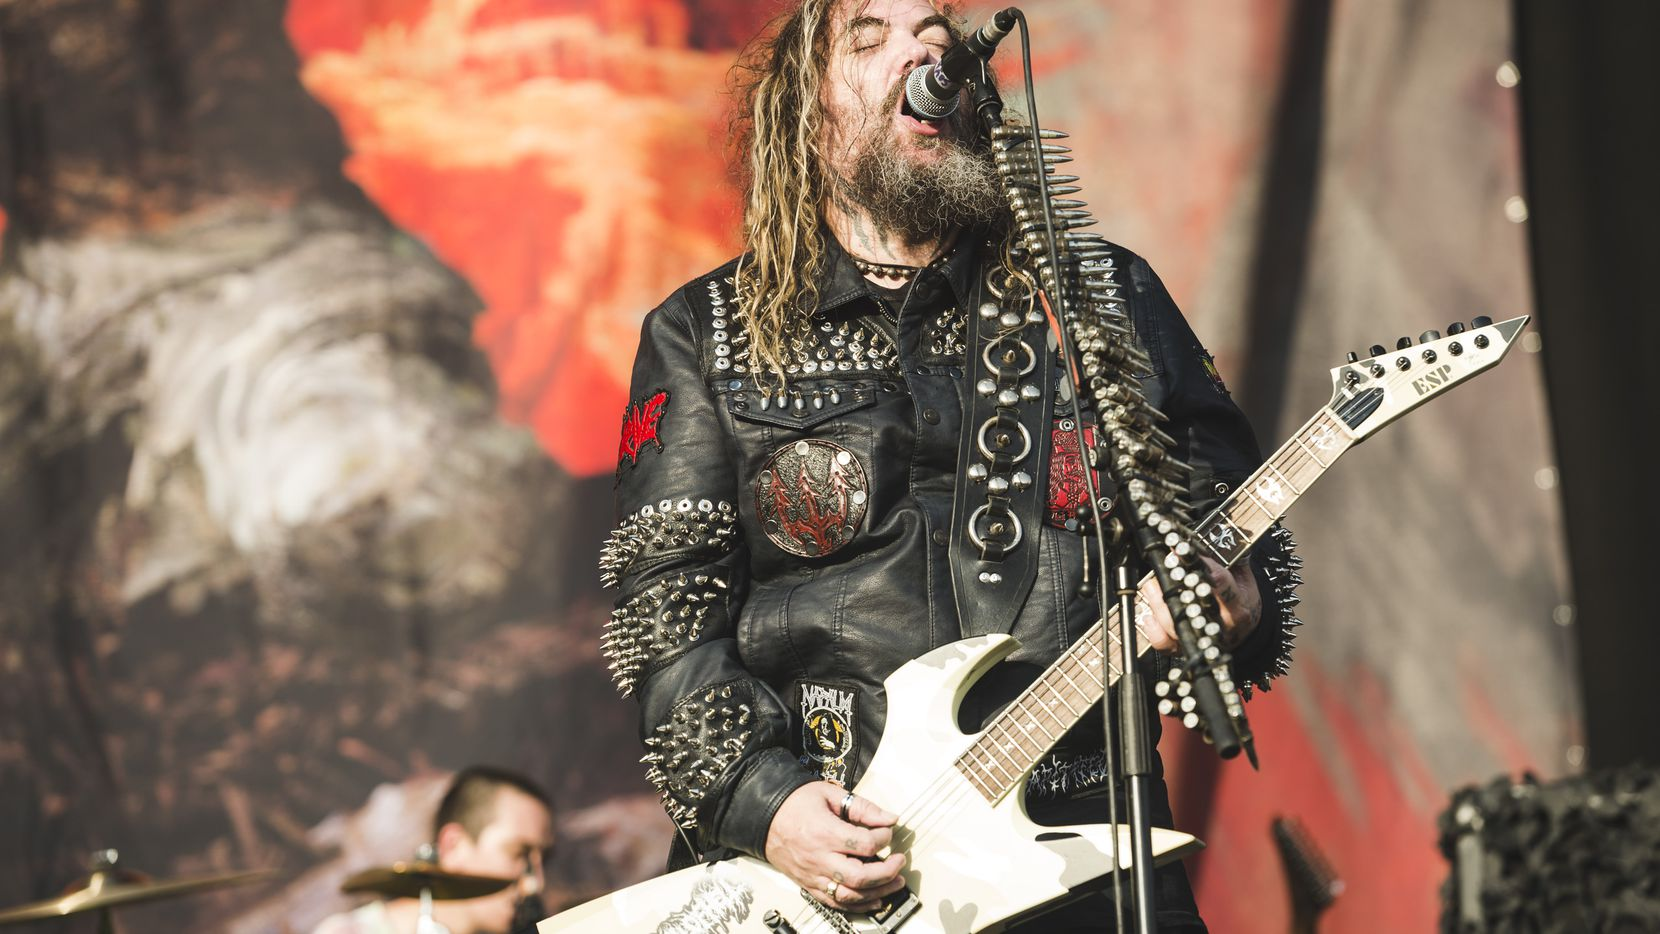 MADRID, SPAIN - JUNE 30: Max Cavalera of Soulfly performs on stage during day 3 of Download festival 2019 at La Caja Magica on June 30, 2019 in Madrid, Spain. (Photo by Mariano Regidor/Redferns)